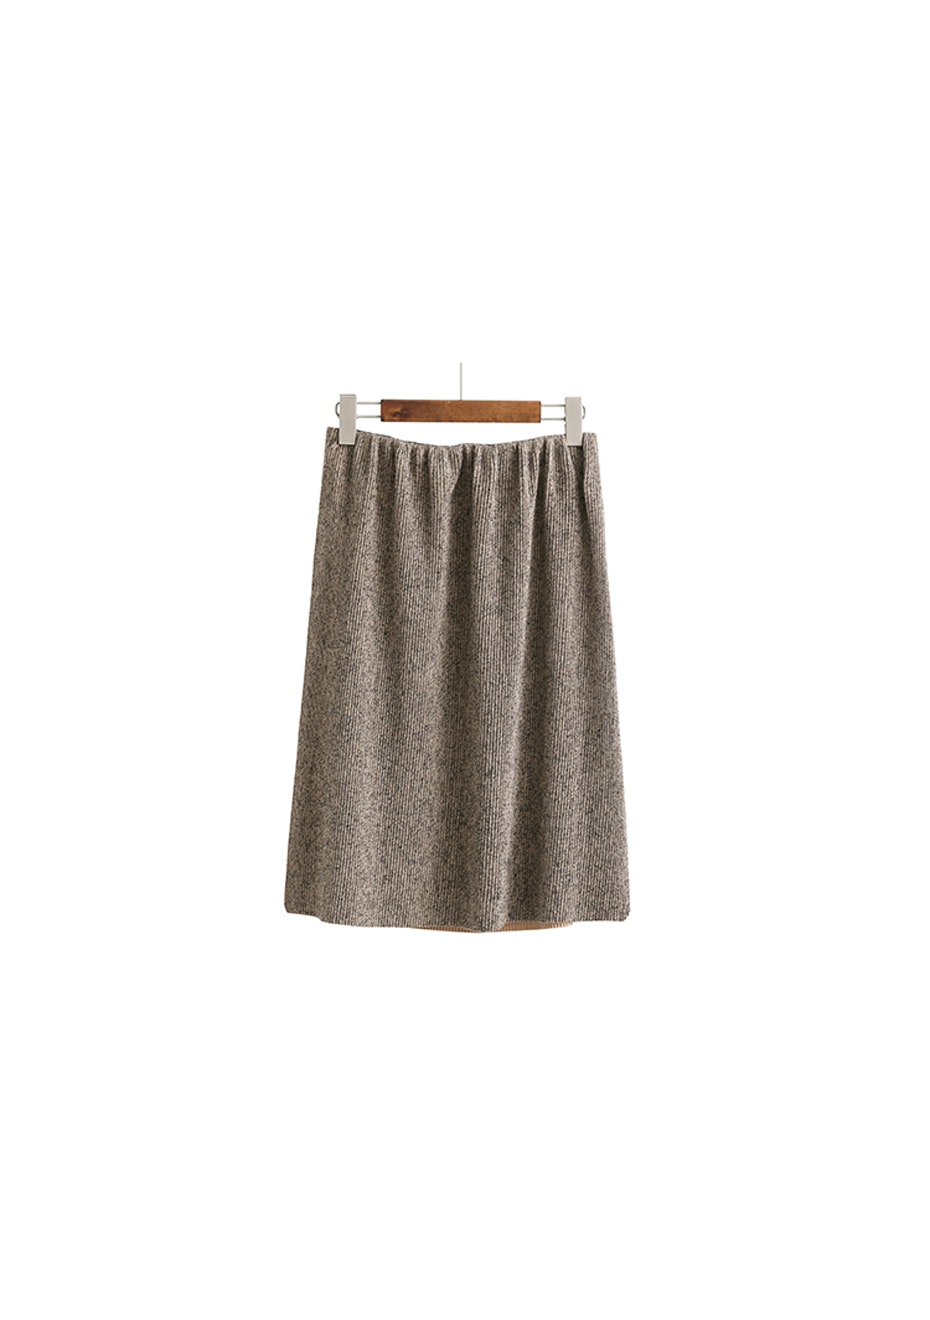 Dillan Knit Skirt  - Camel